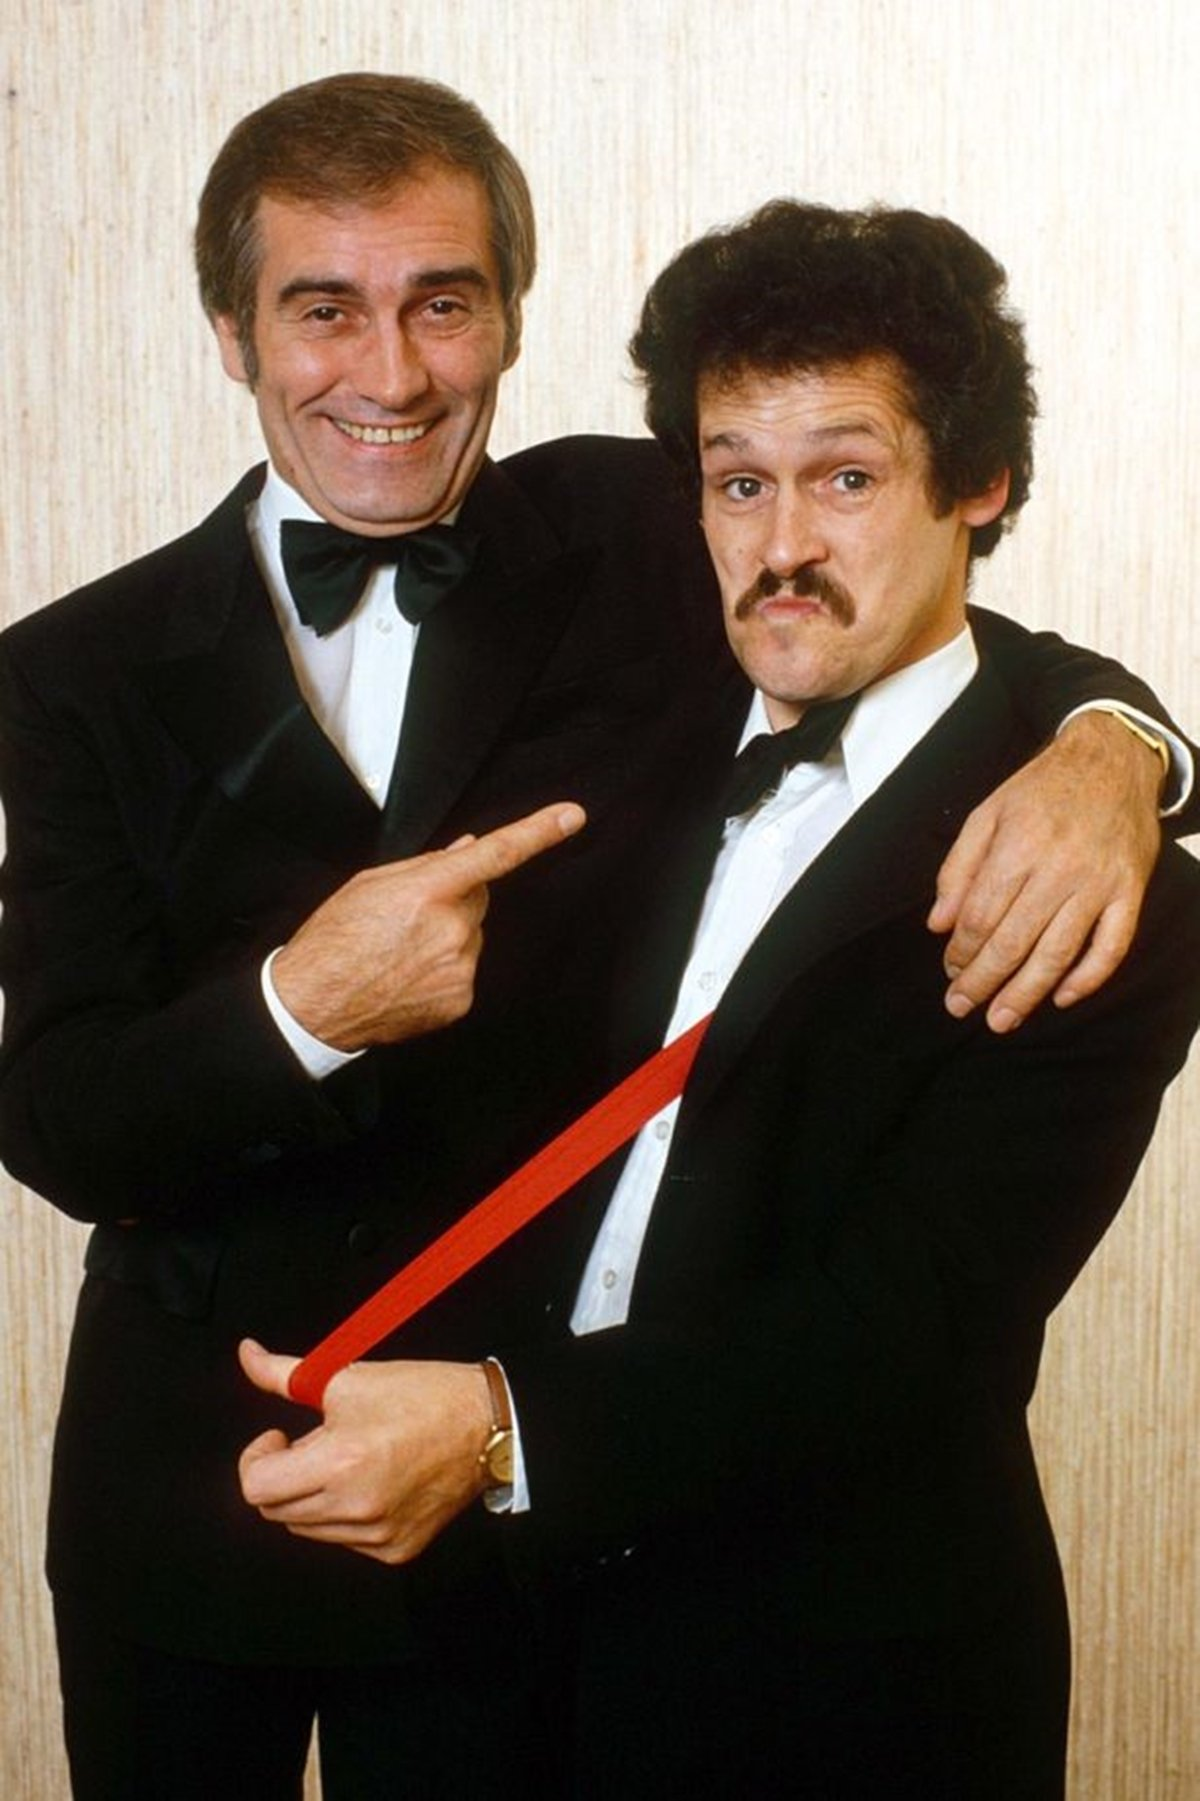 CANNONBALL 10 British Comedy Stars Who Ended Up Hating Each Other